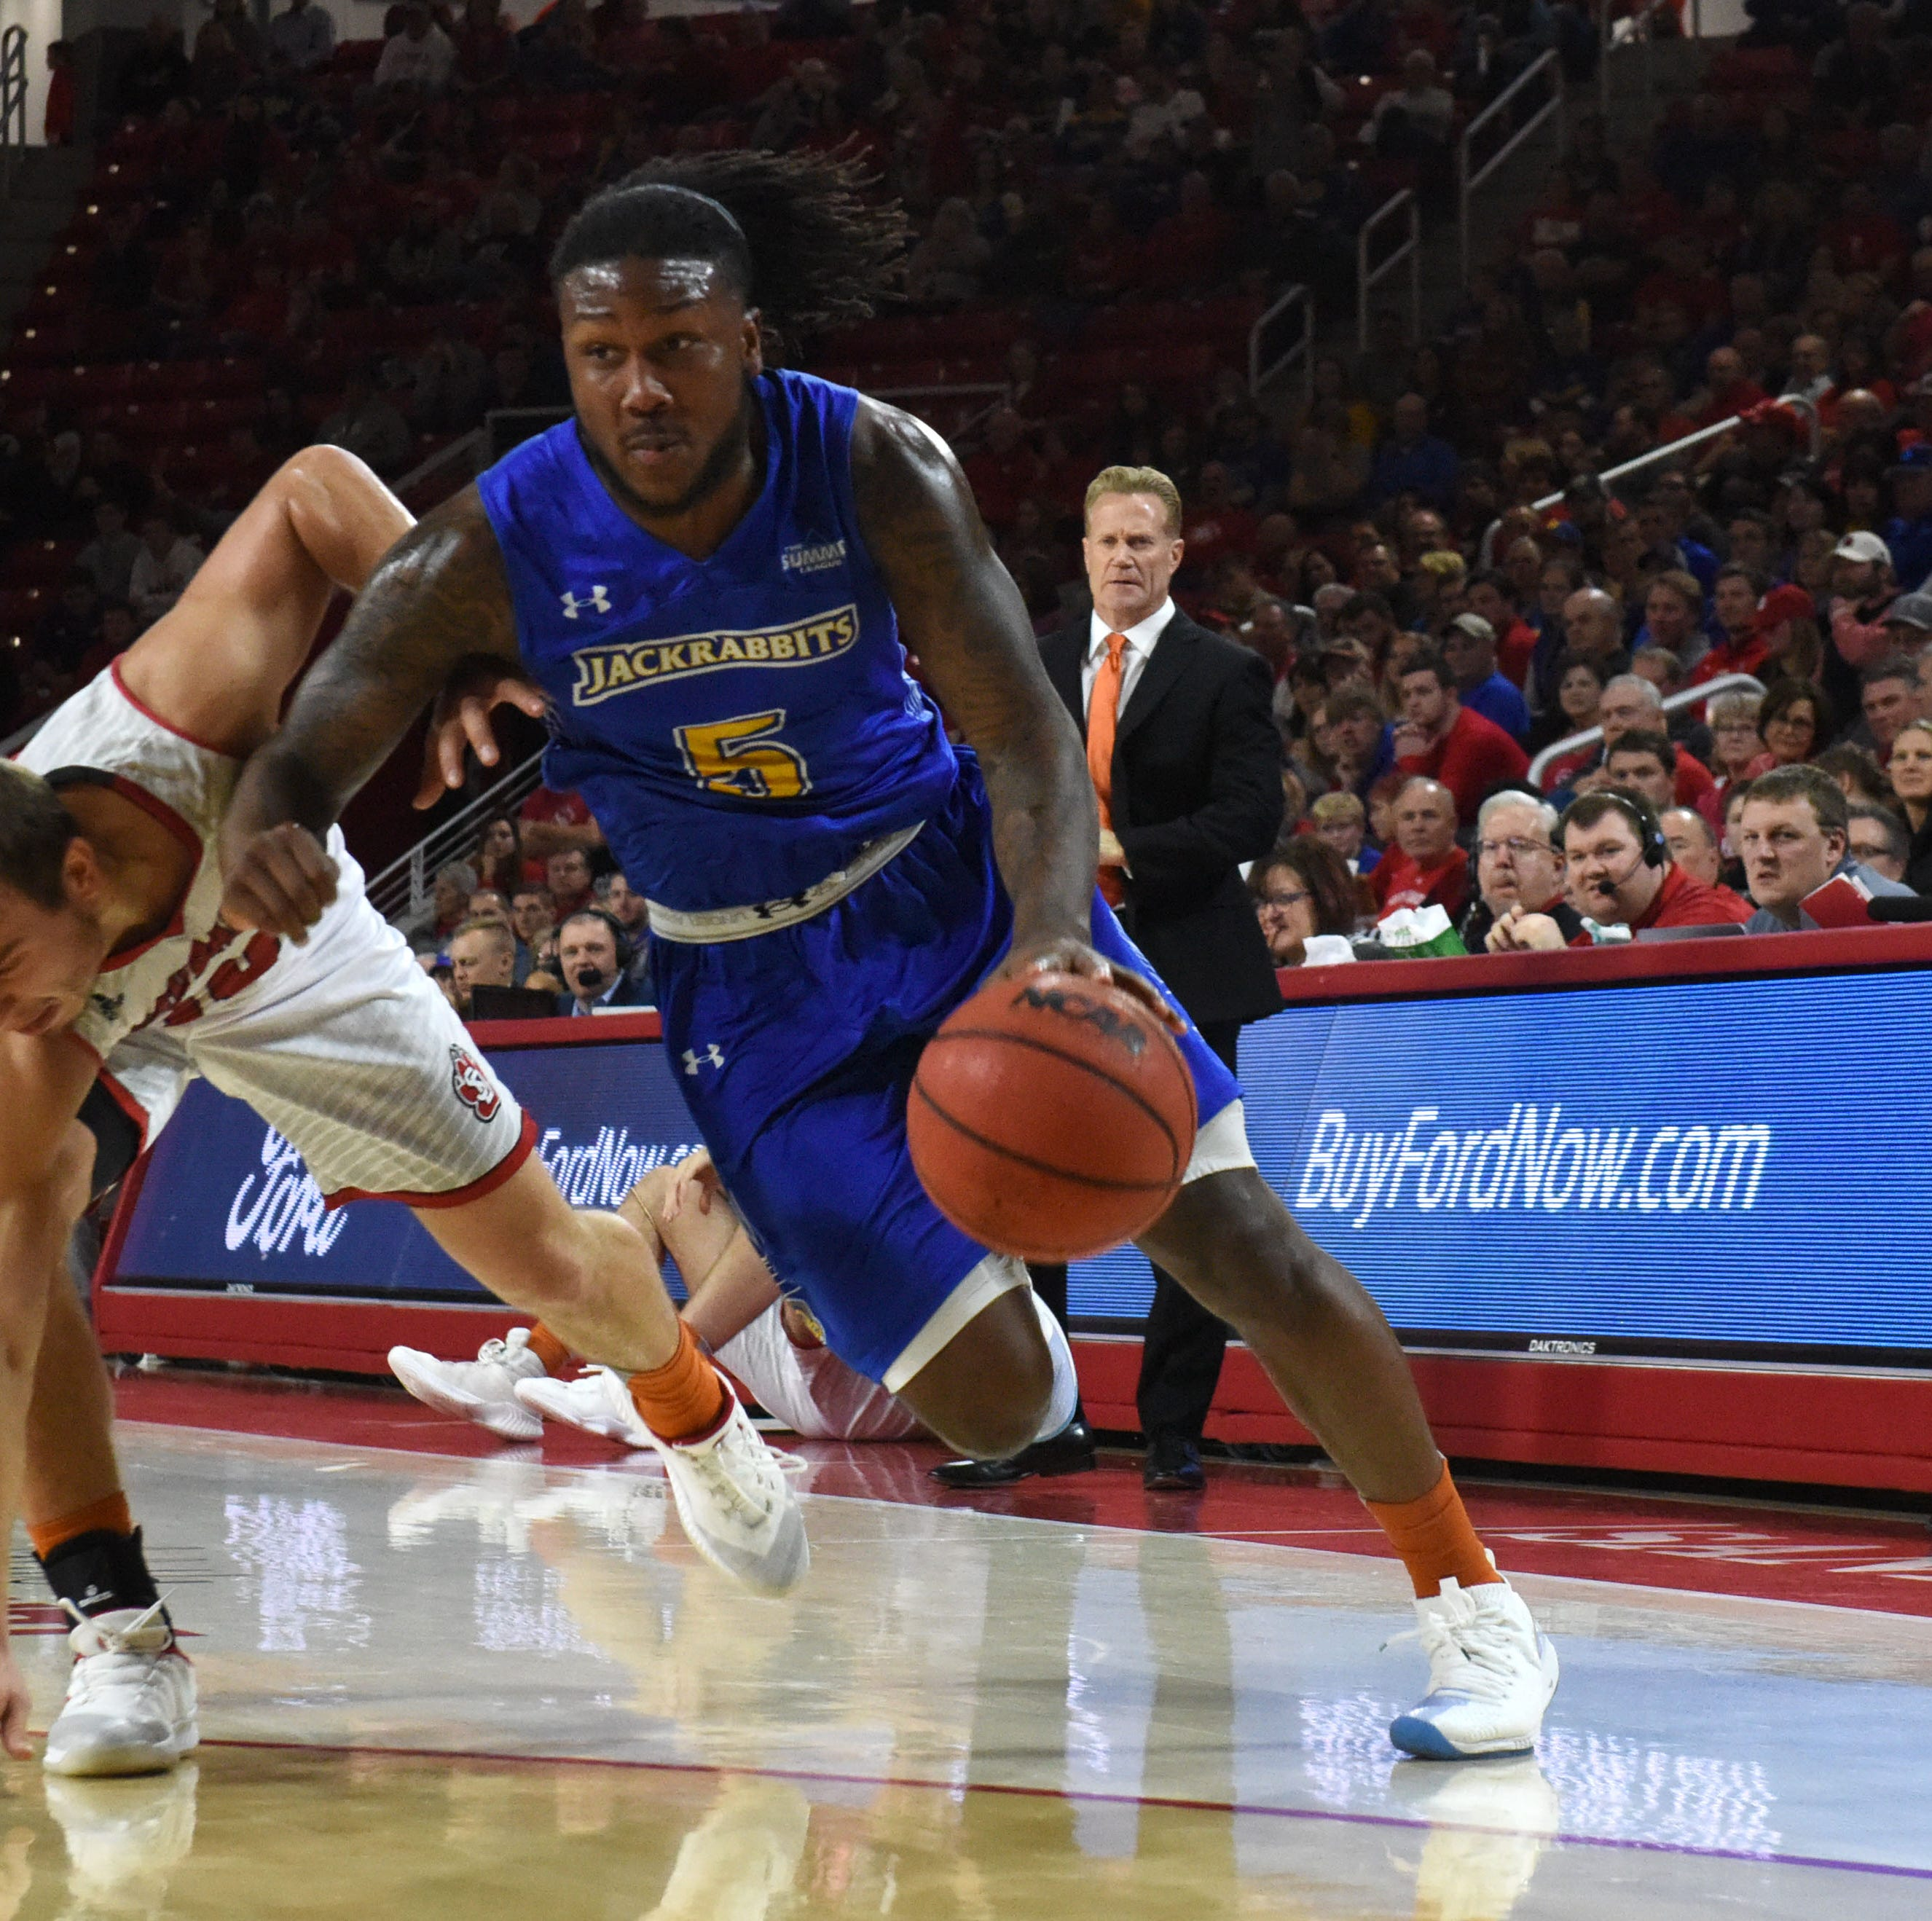 David Jenkins leaving South Dakota State for UNLV